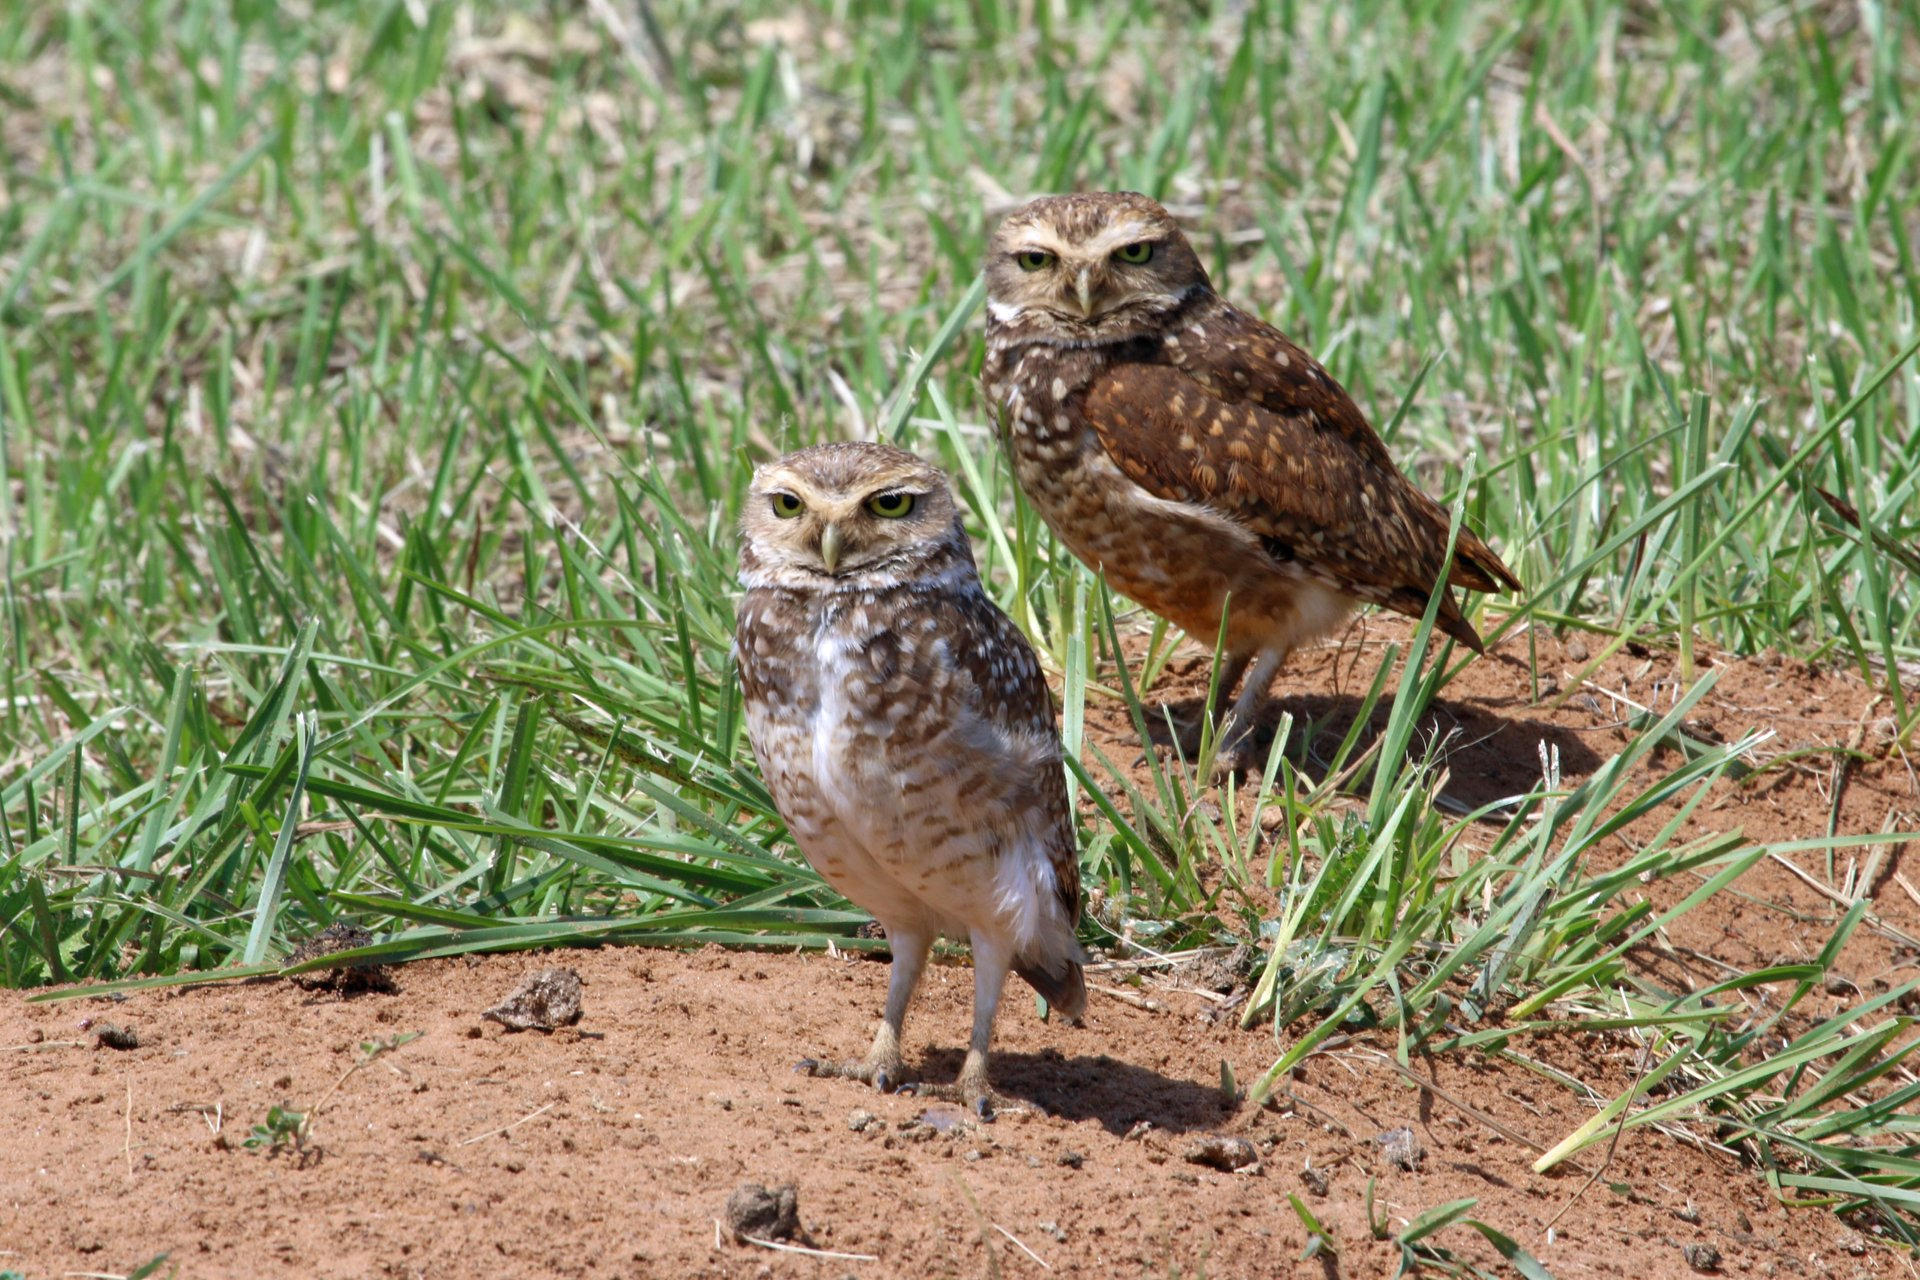 Burrowing Owl Nesting Season in Argentina - Best Time